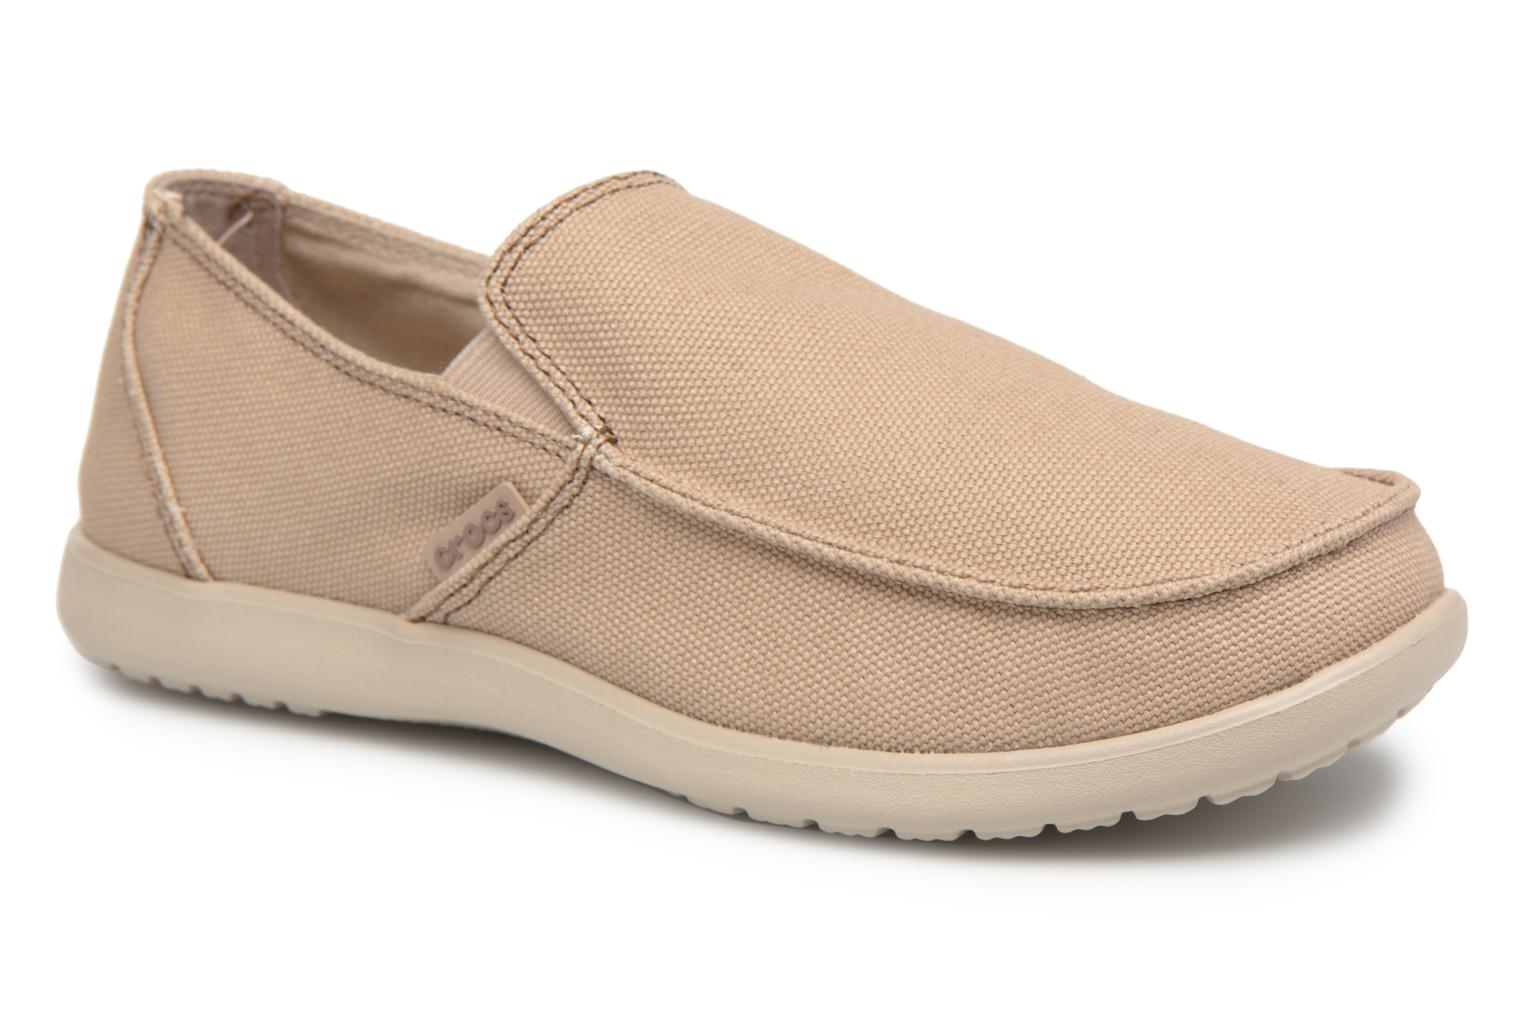 Santa Cruz Clean Cut Loafer - Slipper für Herren / beige Crocs